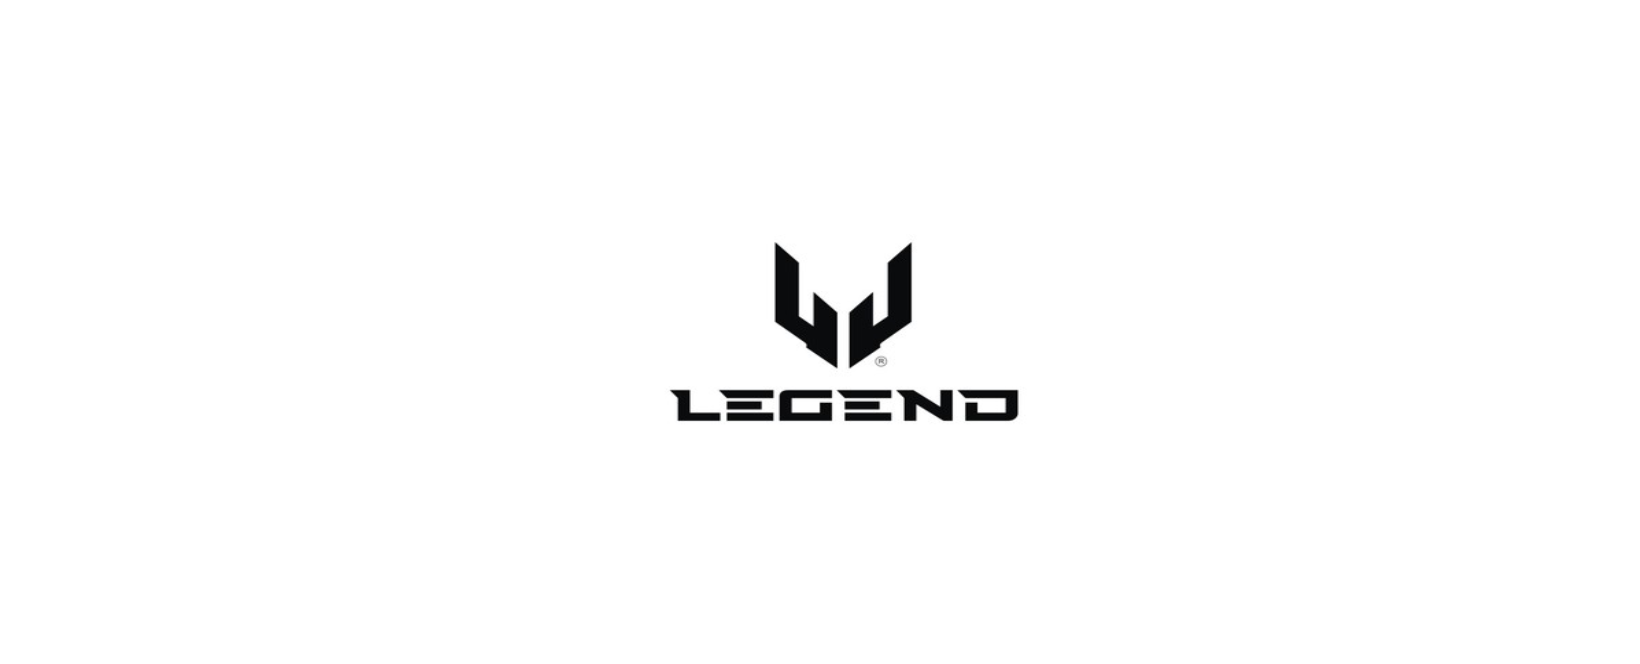 Legends Discount Code & Review – The New Era Performance Wear